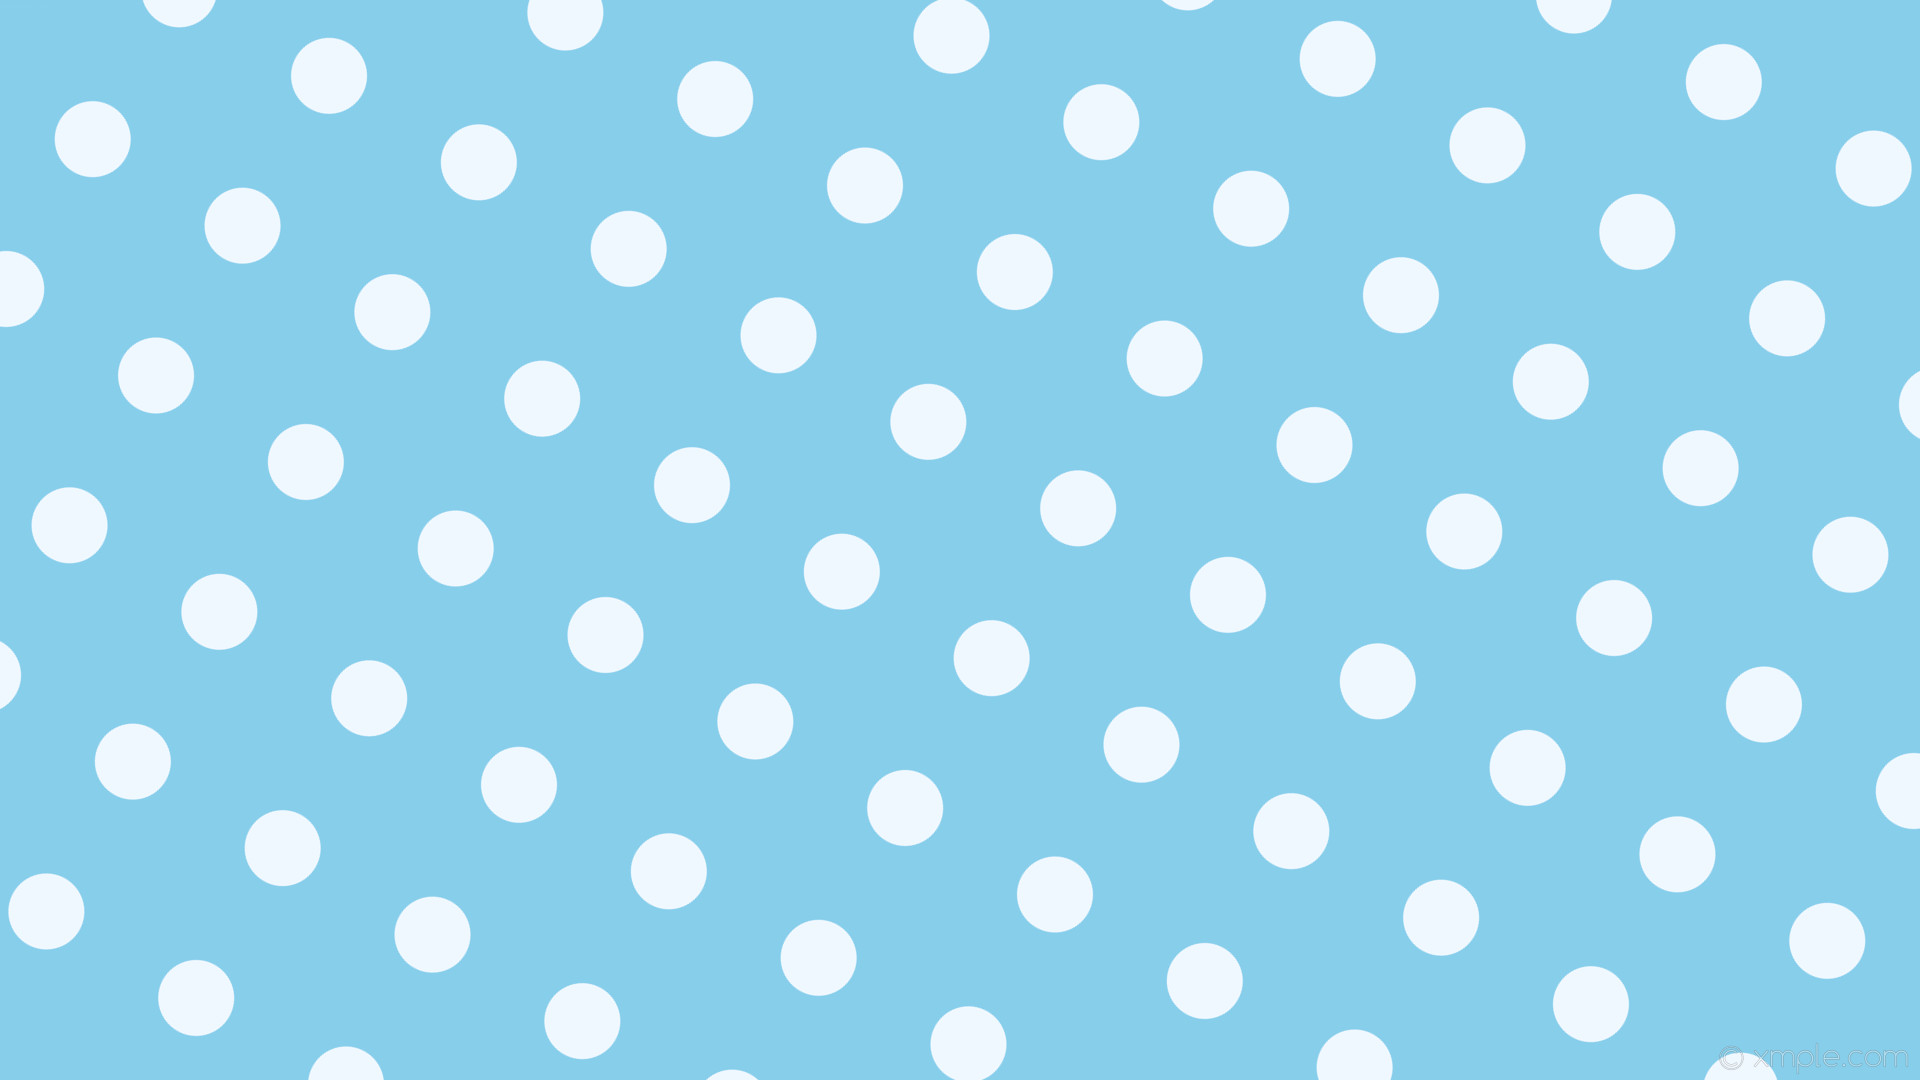 wallpaper dots spots white blue polka sky blue alice blue #87ceeb #f0f8ff  150°